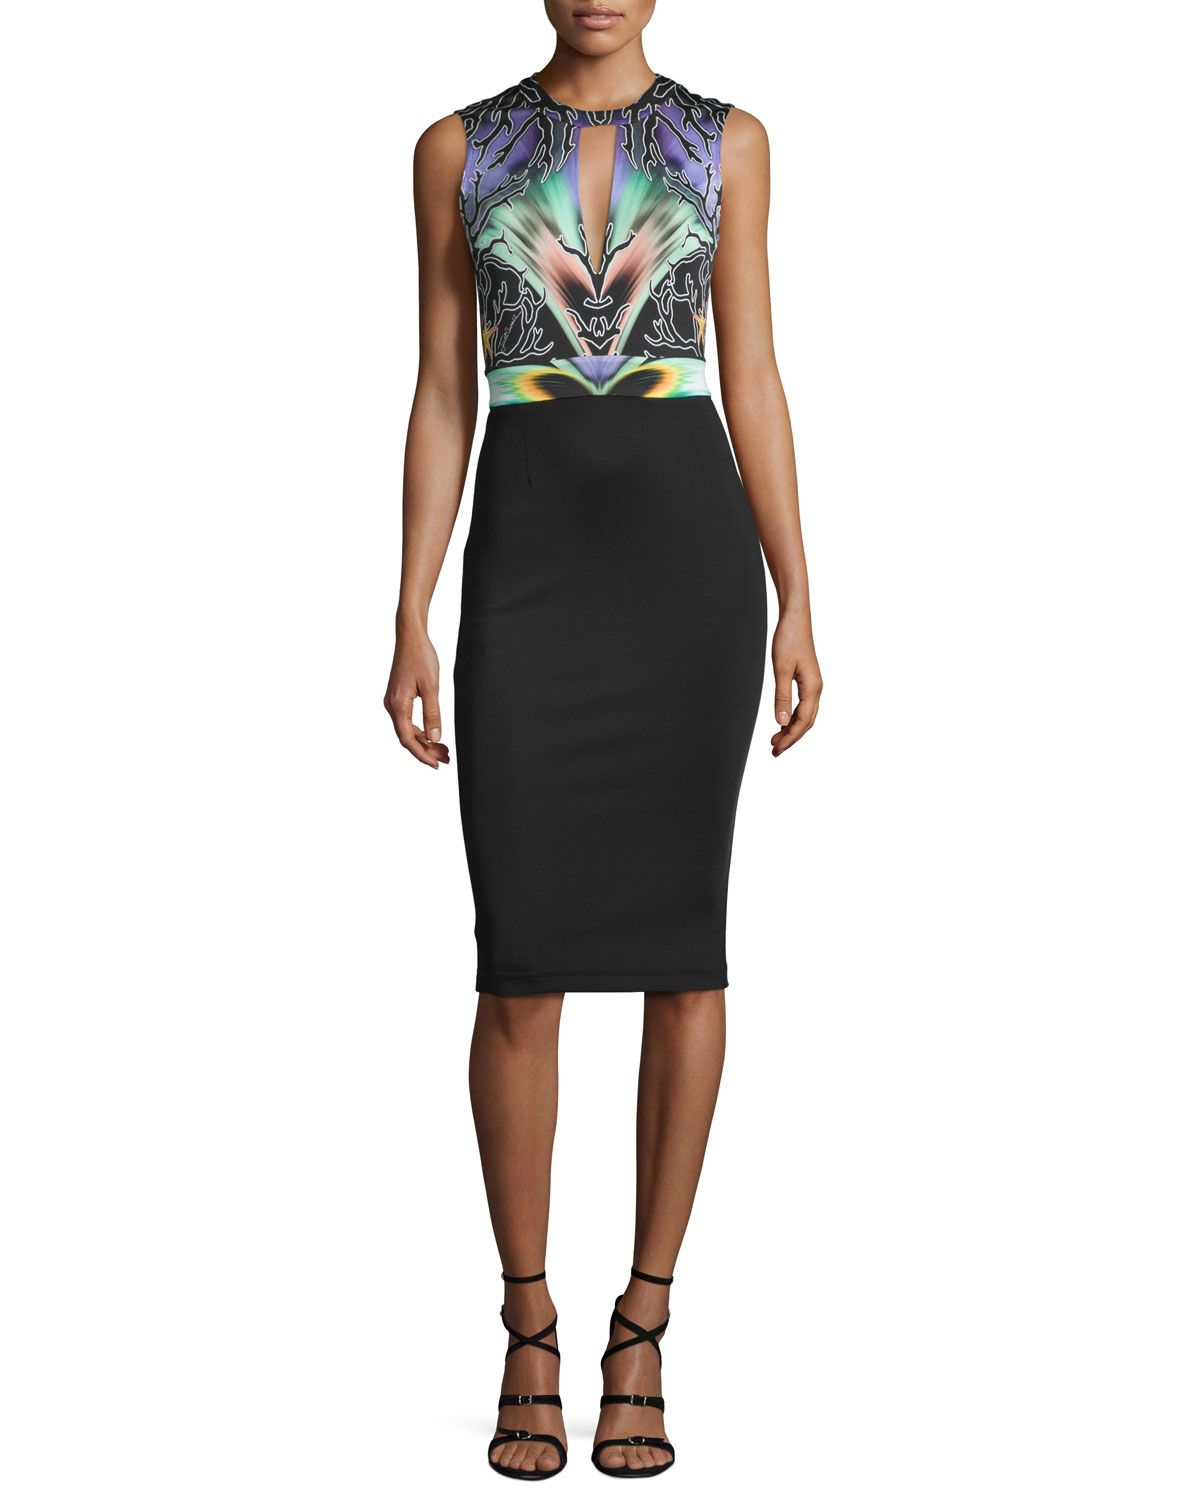 Just Cavalli Woman Sequined Printed Mini Dress Charcoal Size 42 Just Cavalli Perfect Sale Online Ict29OcT